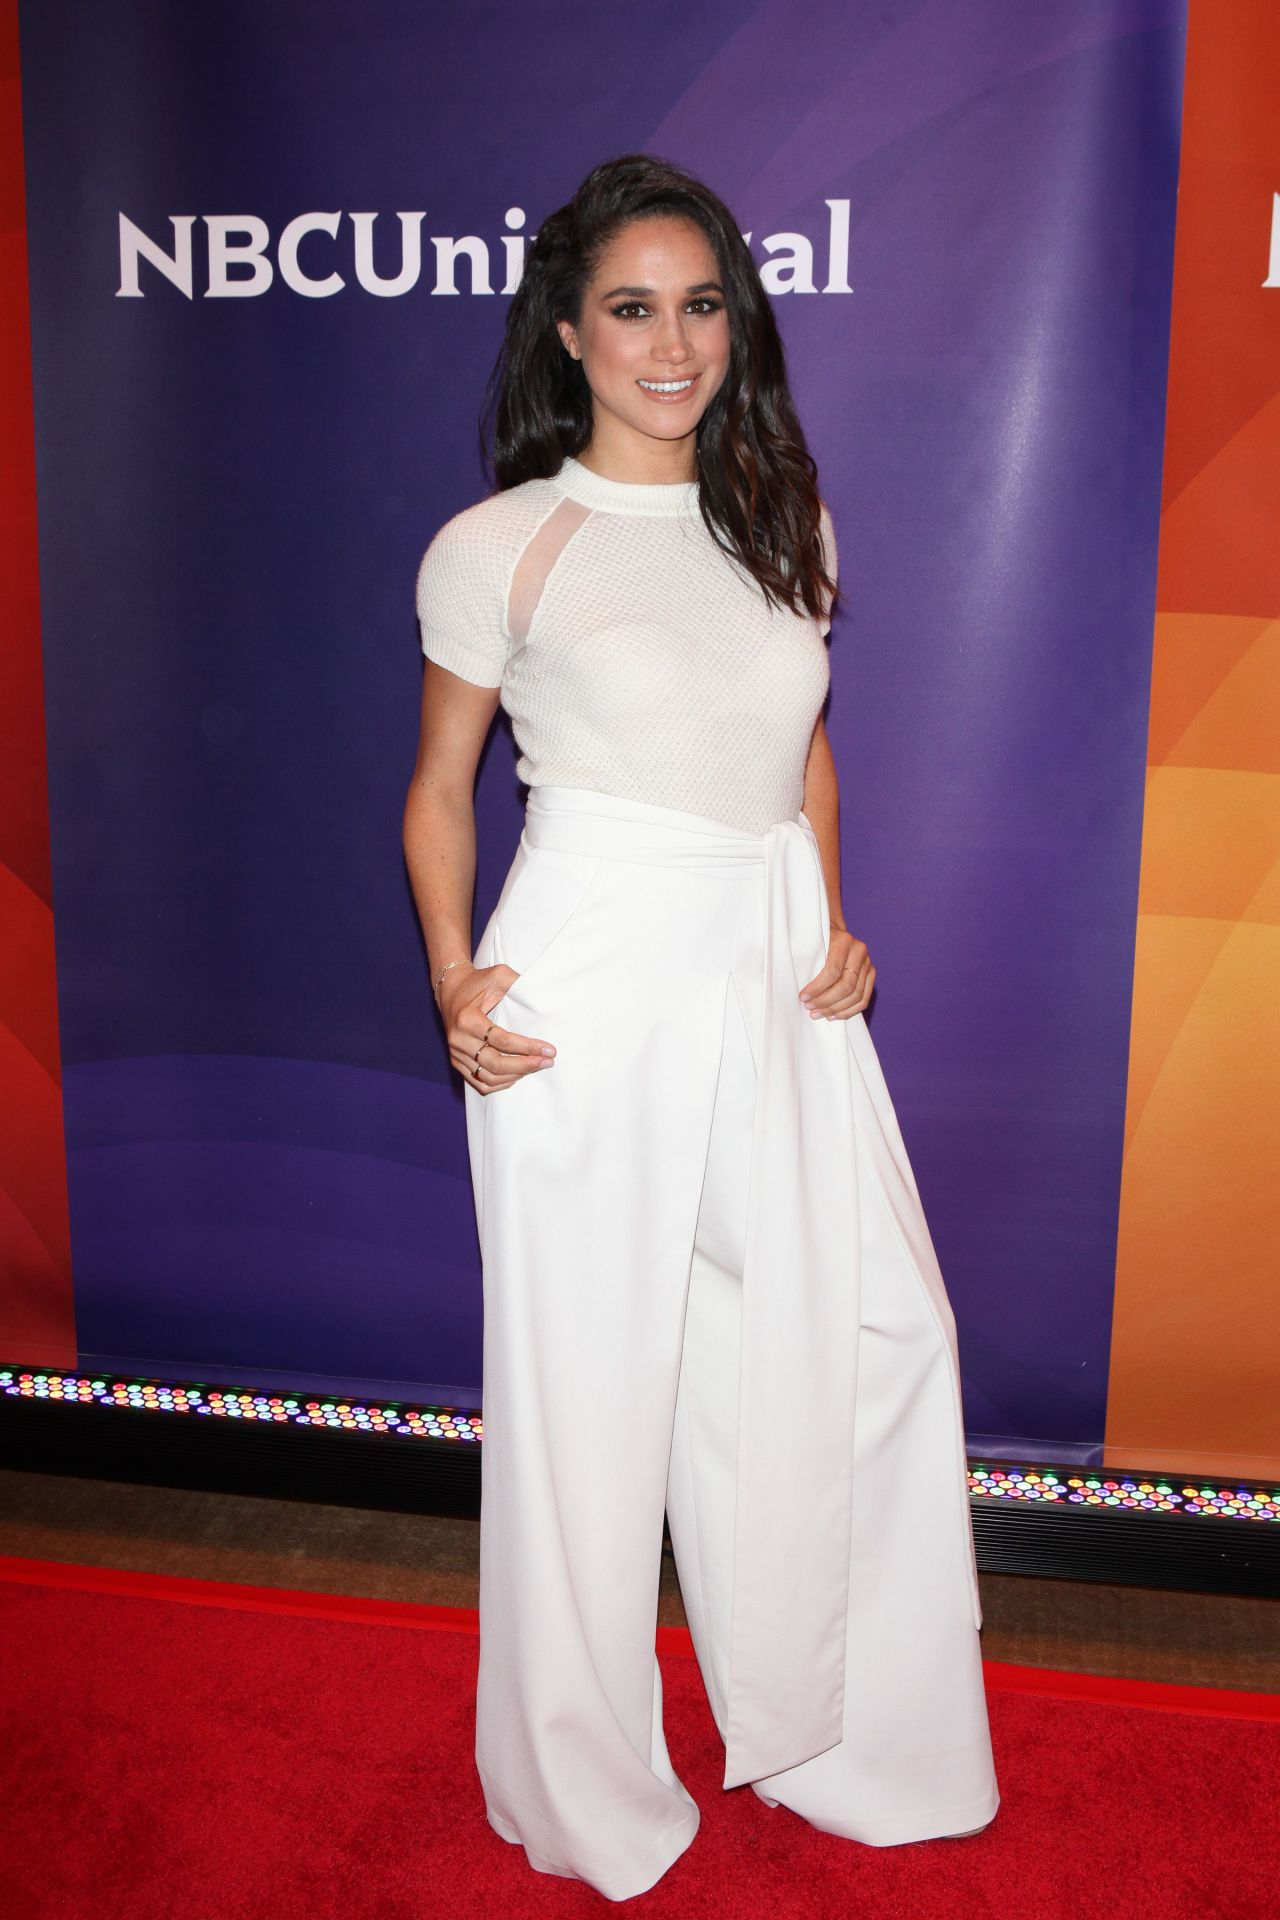 Meghan Markle 2015 Nbc New York Summer Press Day